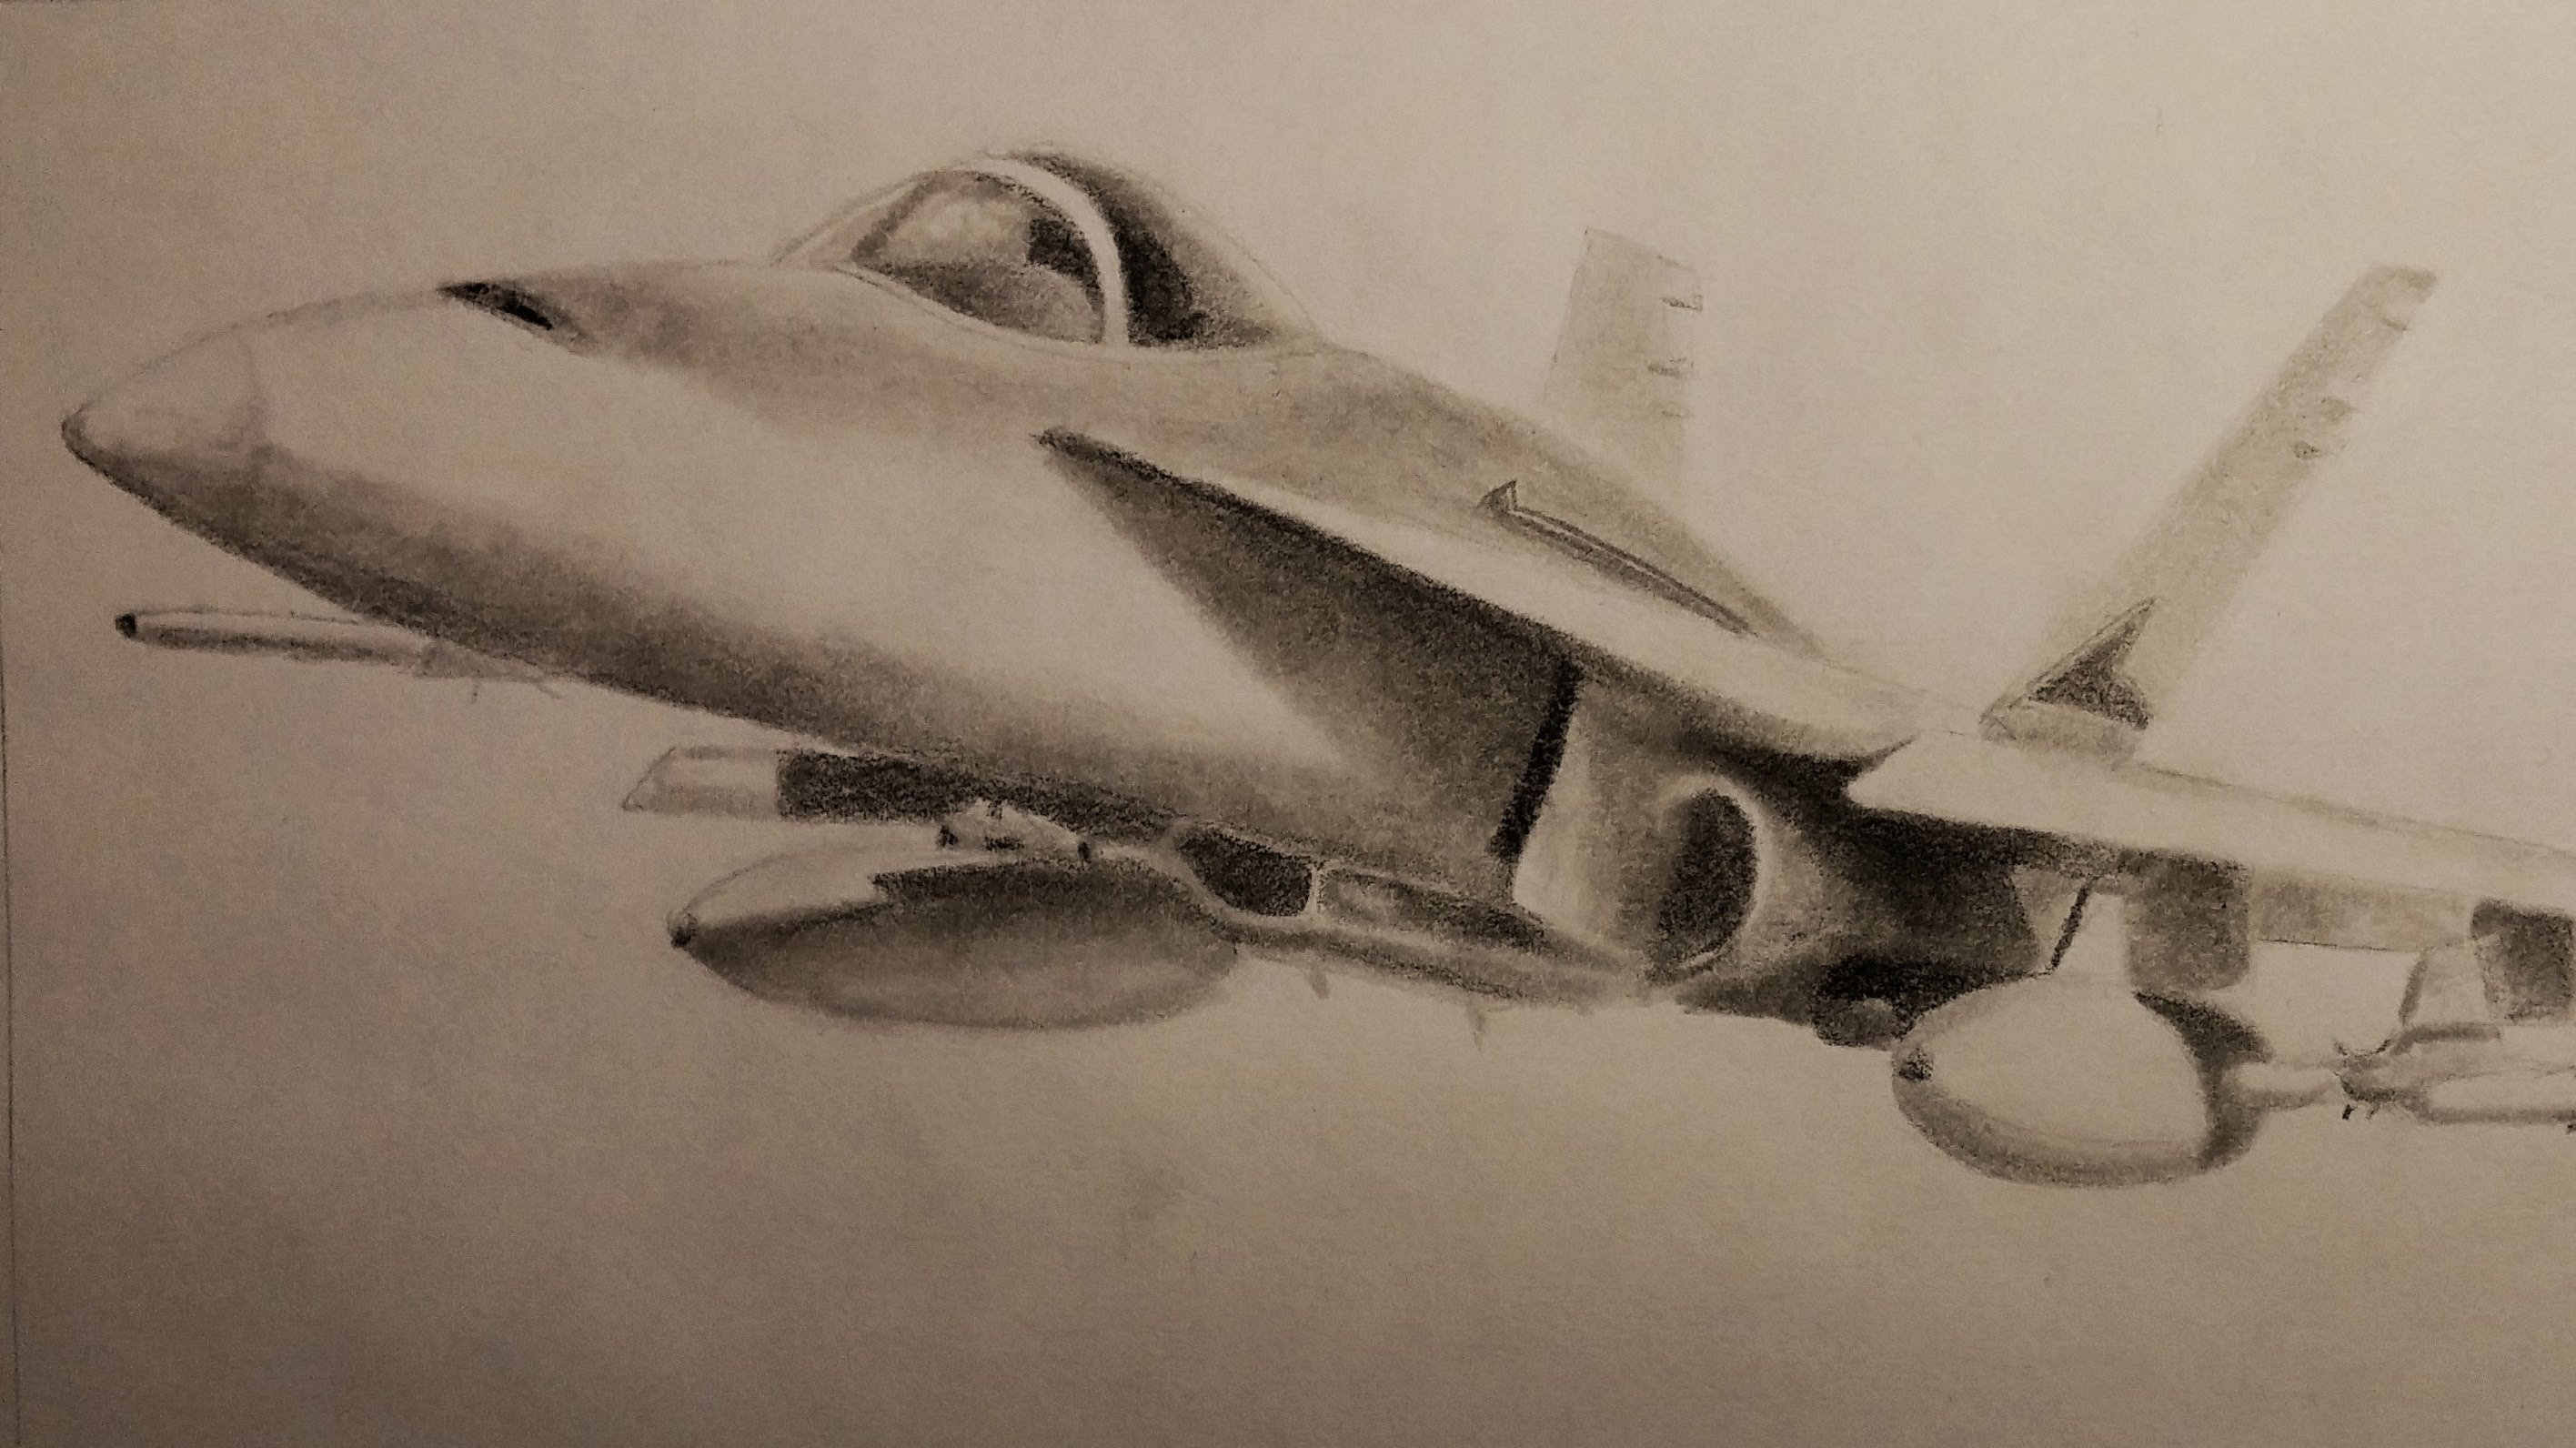 2832x1592 Wicked Plane Drawing F 18 Fighter Jet